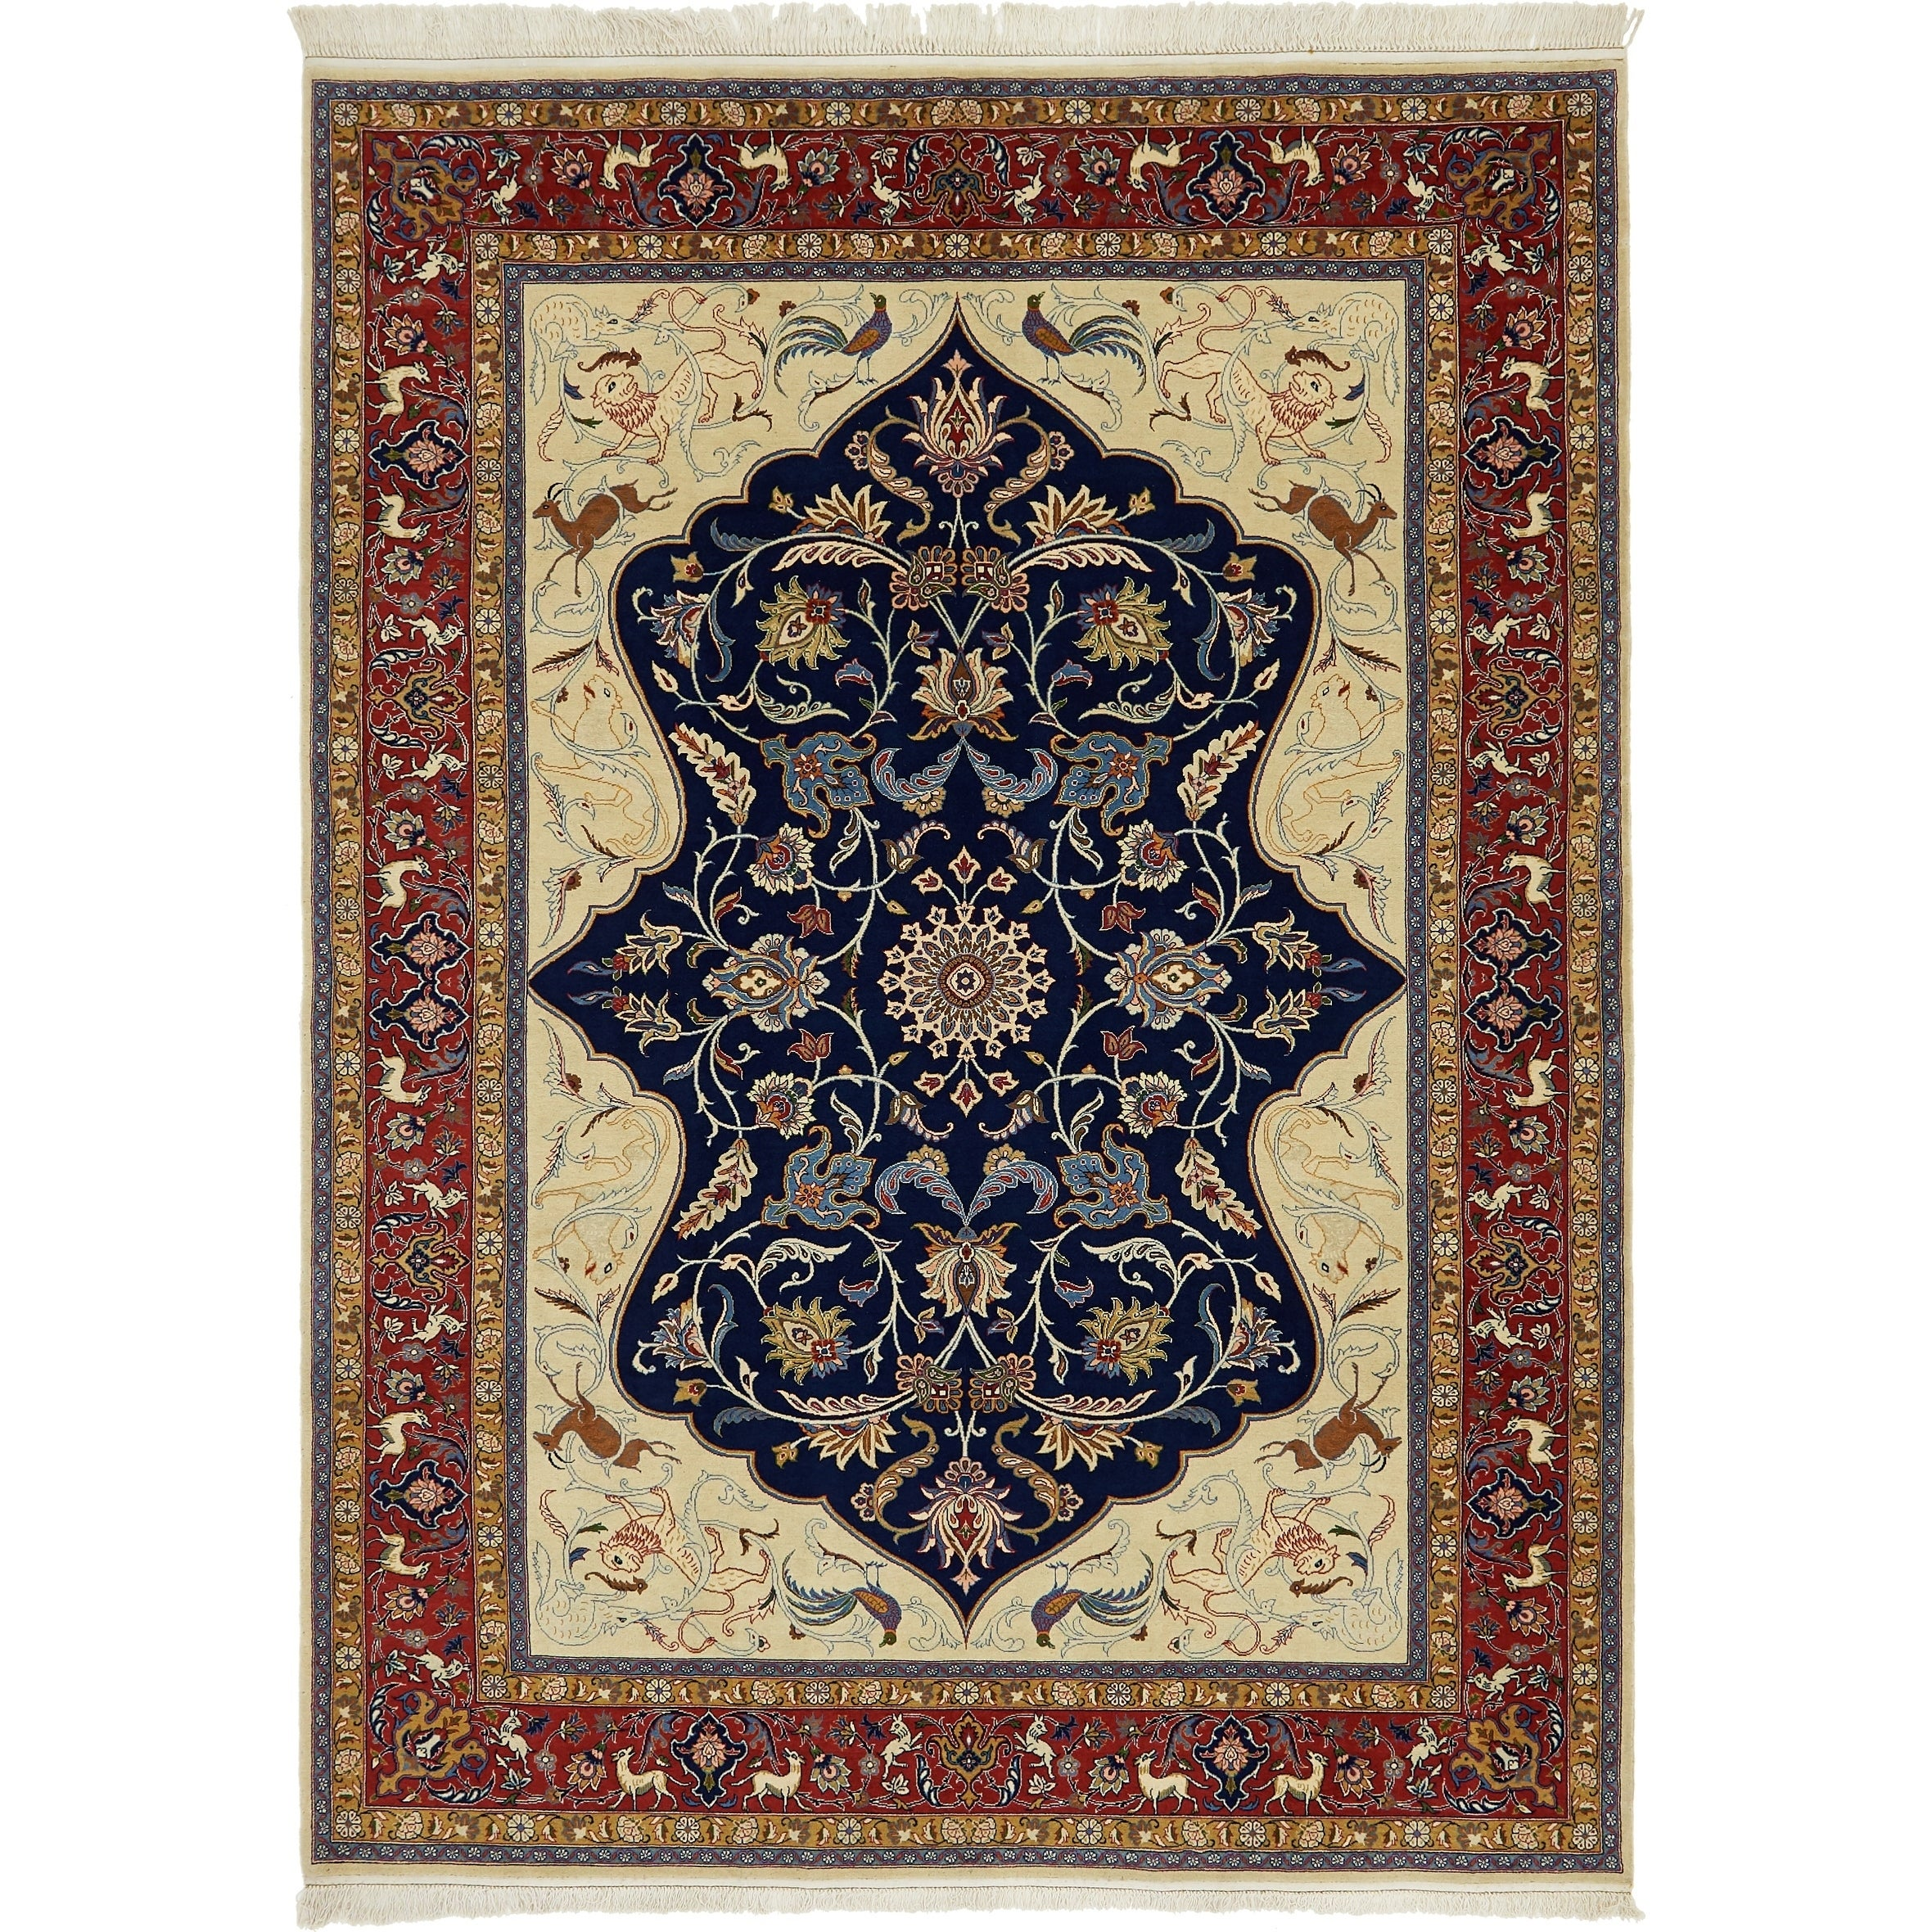 Hand Knotted Kashan Semi Antique Kork Wool Area Rug - 6 10 x 9 6 (Navy blue - 6 10 x 9 6)